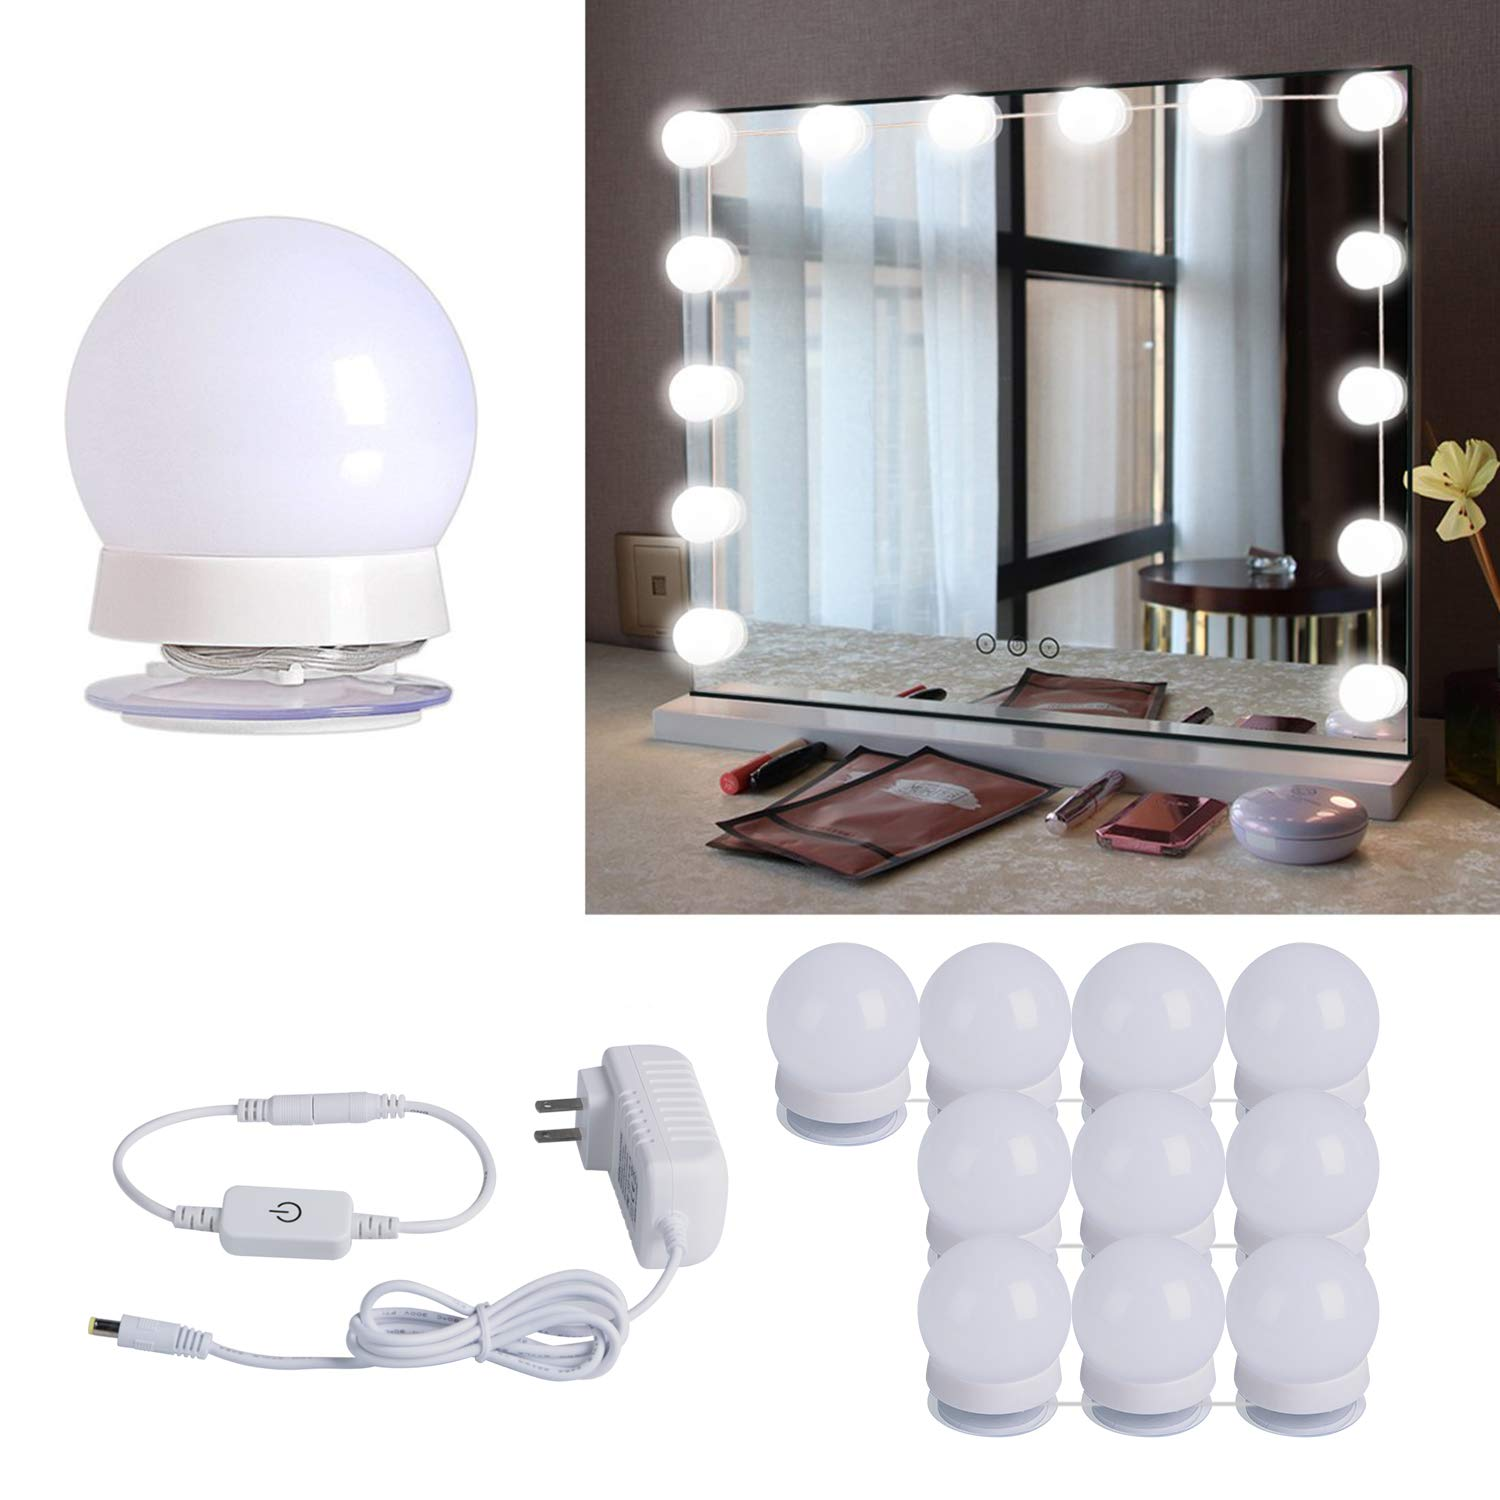 Hollywood Style LED Vanity Mirror Lights Kit with 10 Dimmable Light Bulbs For Makeup Dressing Table and Power Supply Plug in Lighting Fixture Strip, Vanity Mirror Light, White (No Mirror Included) by Brightown